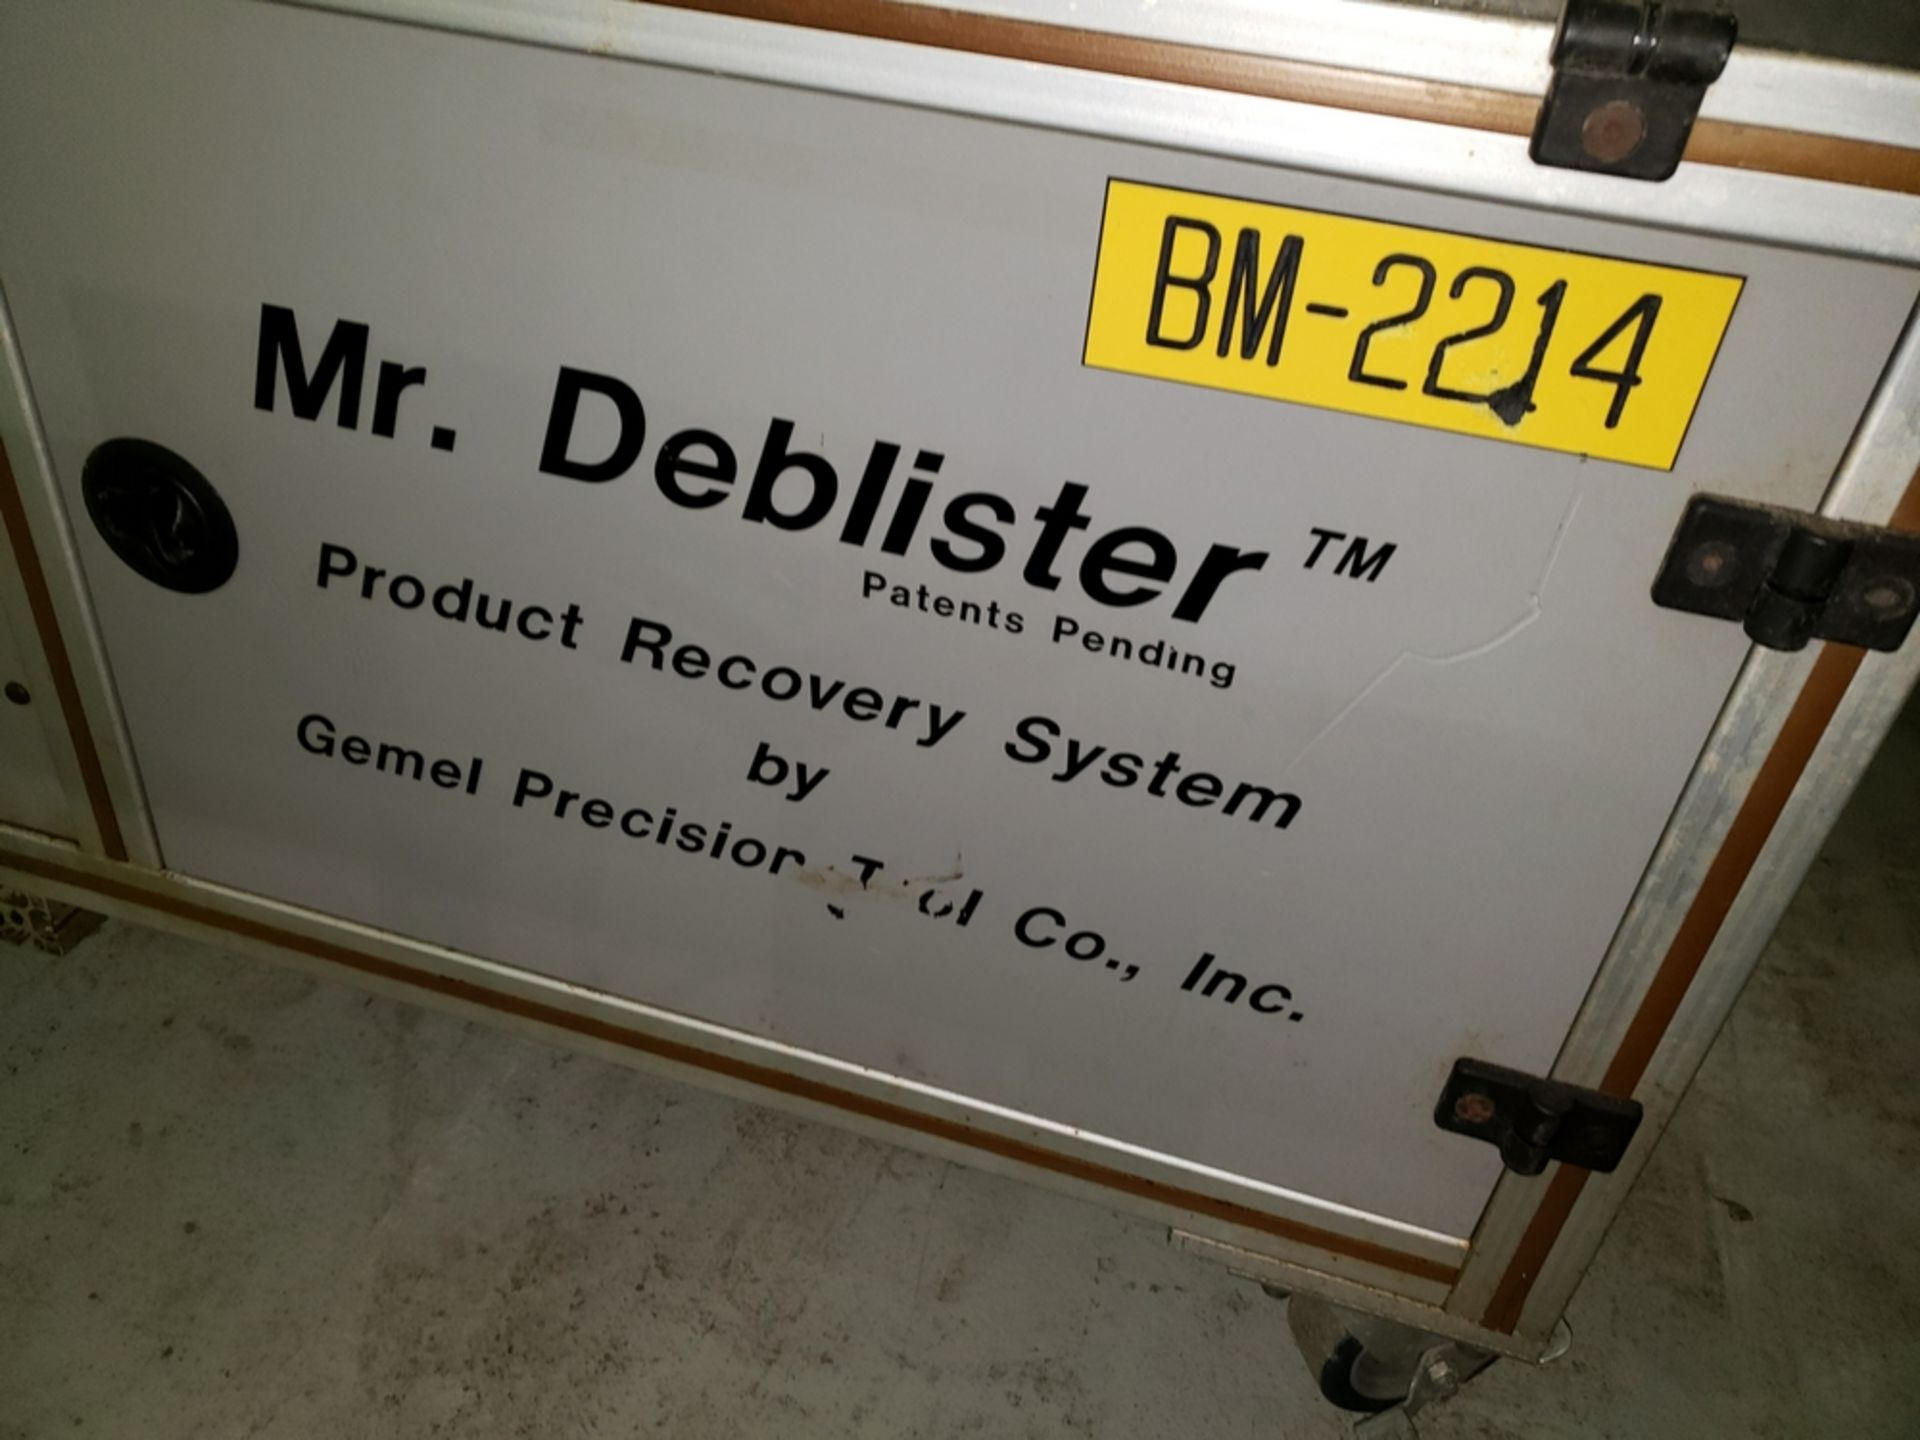 Lot 37 - Gemel Mr. Deblister machine, 30mm x 50mm min to 120mm x 145mm max format sizes, rated up to 4800/